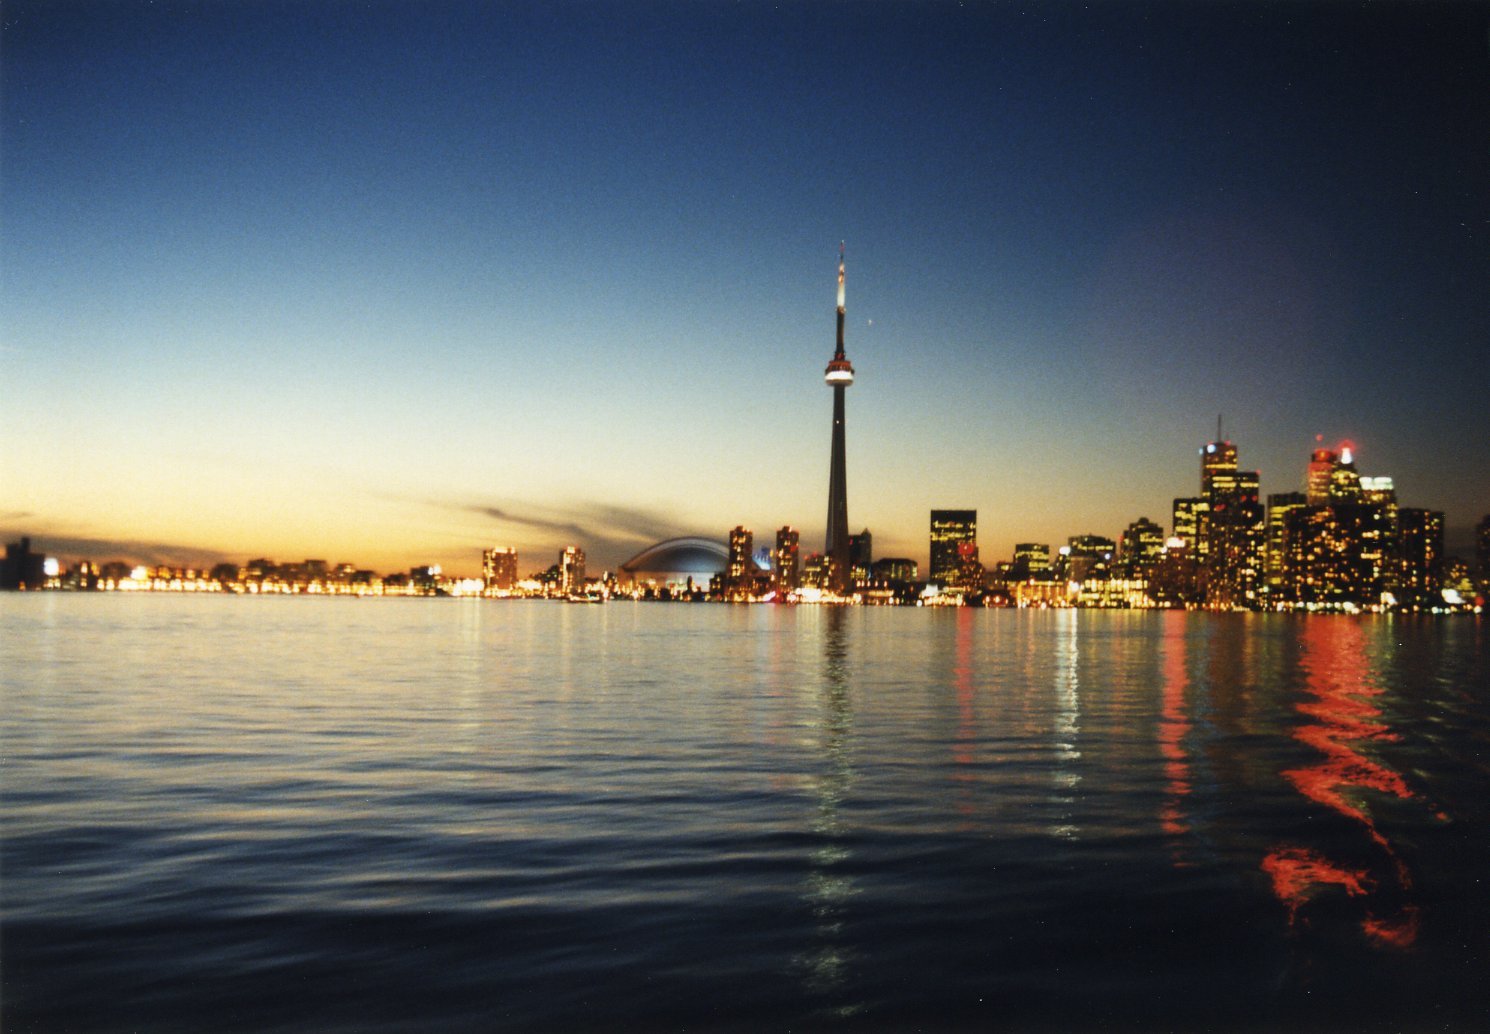 Hd wallpapers desktop canada country hd desktop wallpapers - Beautiful country iphone backgrounds ...